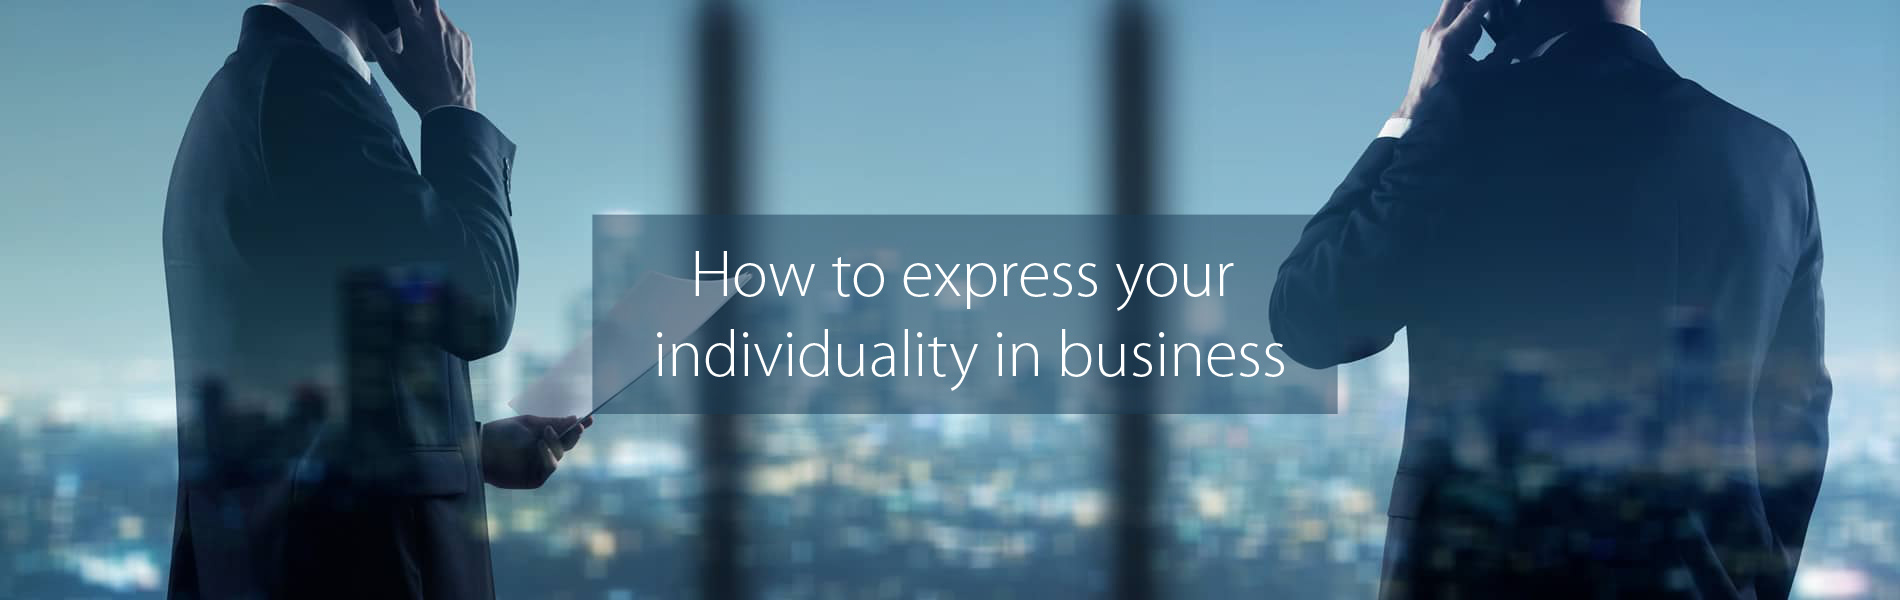 how to express your individuality in business